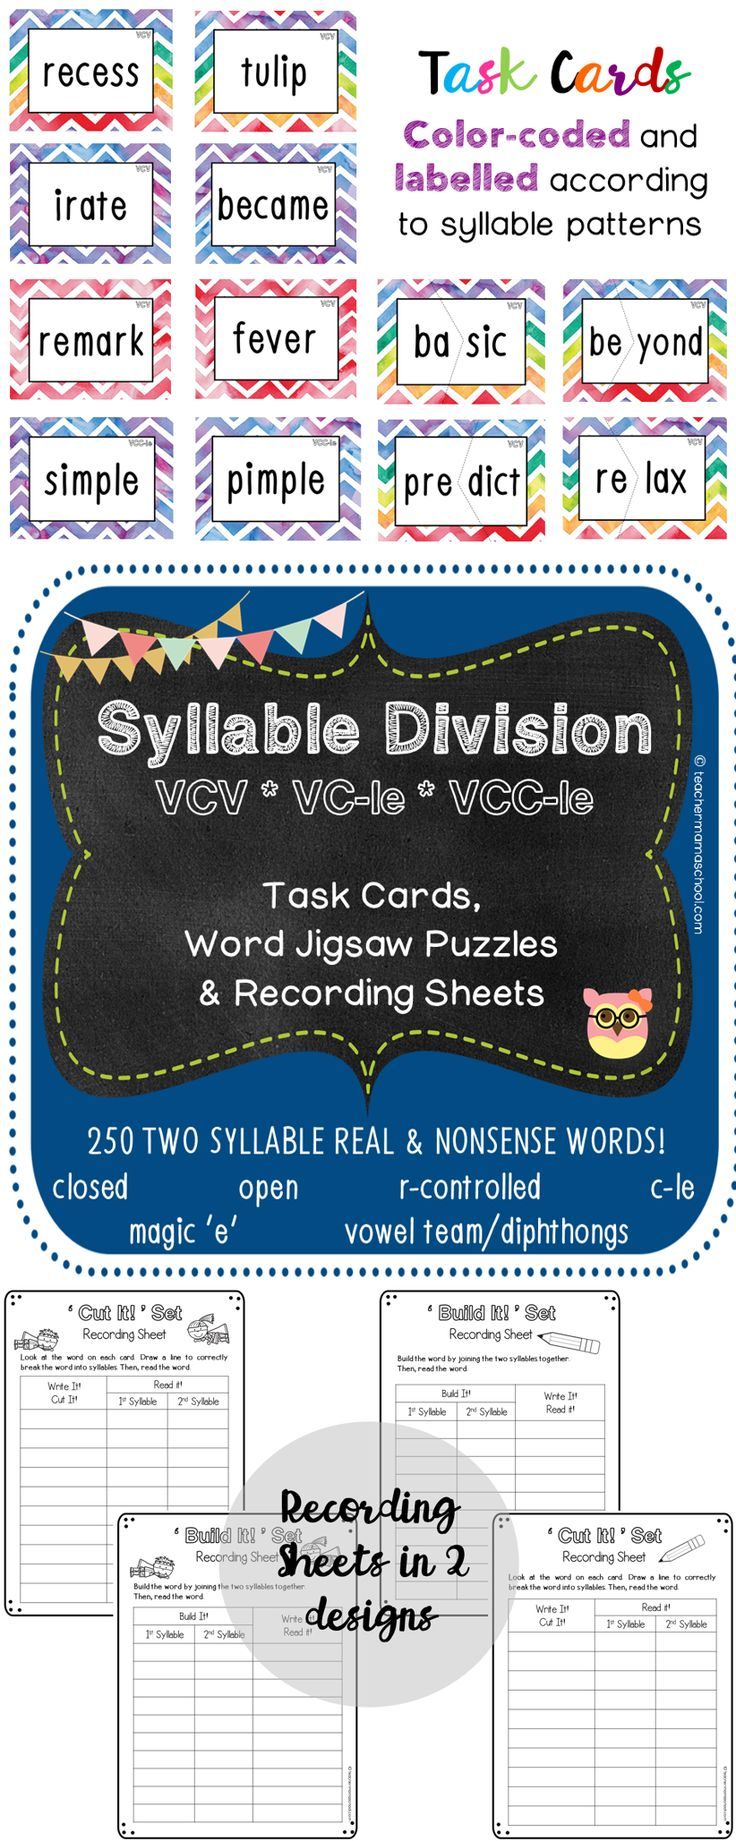 syllable centers | task cards | vcv | final stable syllables | This pack of syllables center task cards consists of 2 sets – 'Cut It!' Set and 'Build It!' Set. | The word cards are suitable for small-group teaching or as a learning center activity. It is advisable to revise the syllable types, VCV, VC-le and VCC-le syllable patterns and syllable division rules prior to using this pack with your pupils.